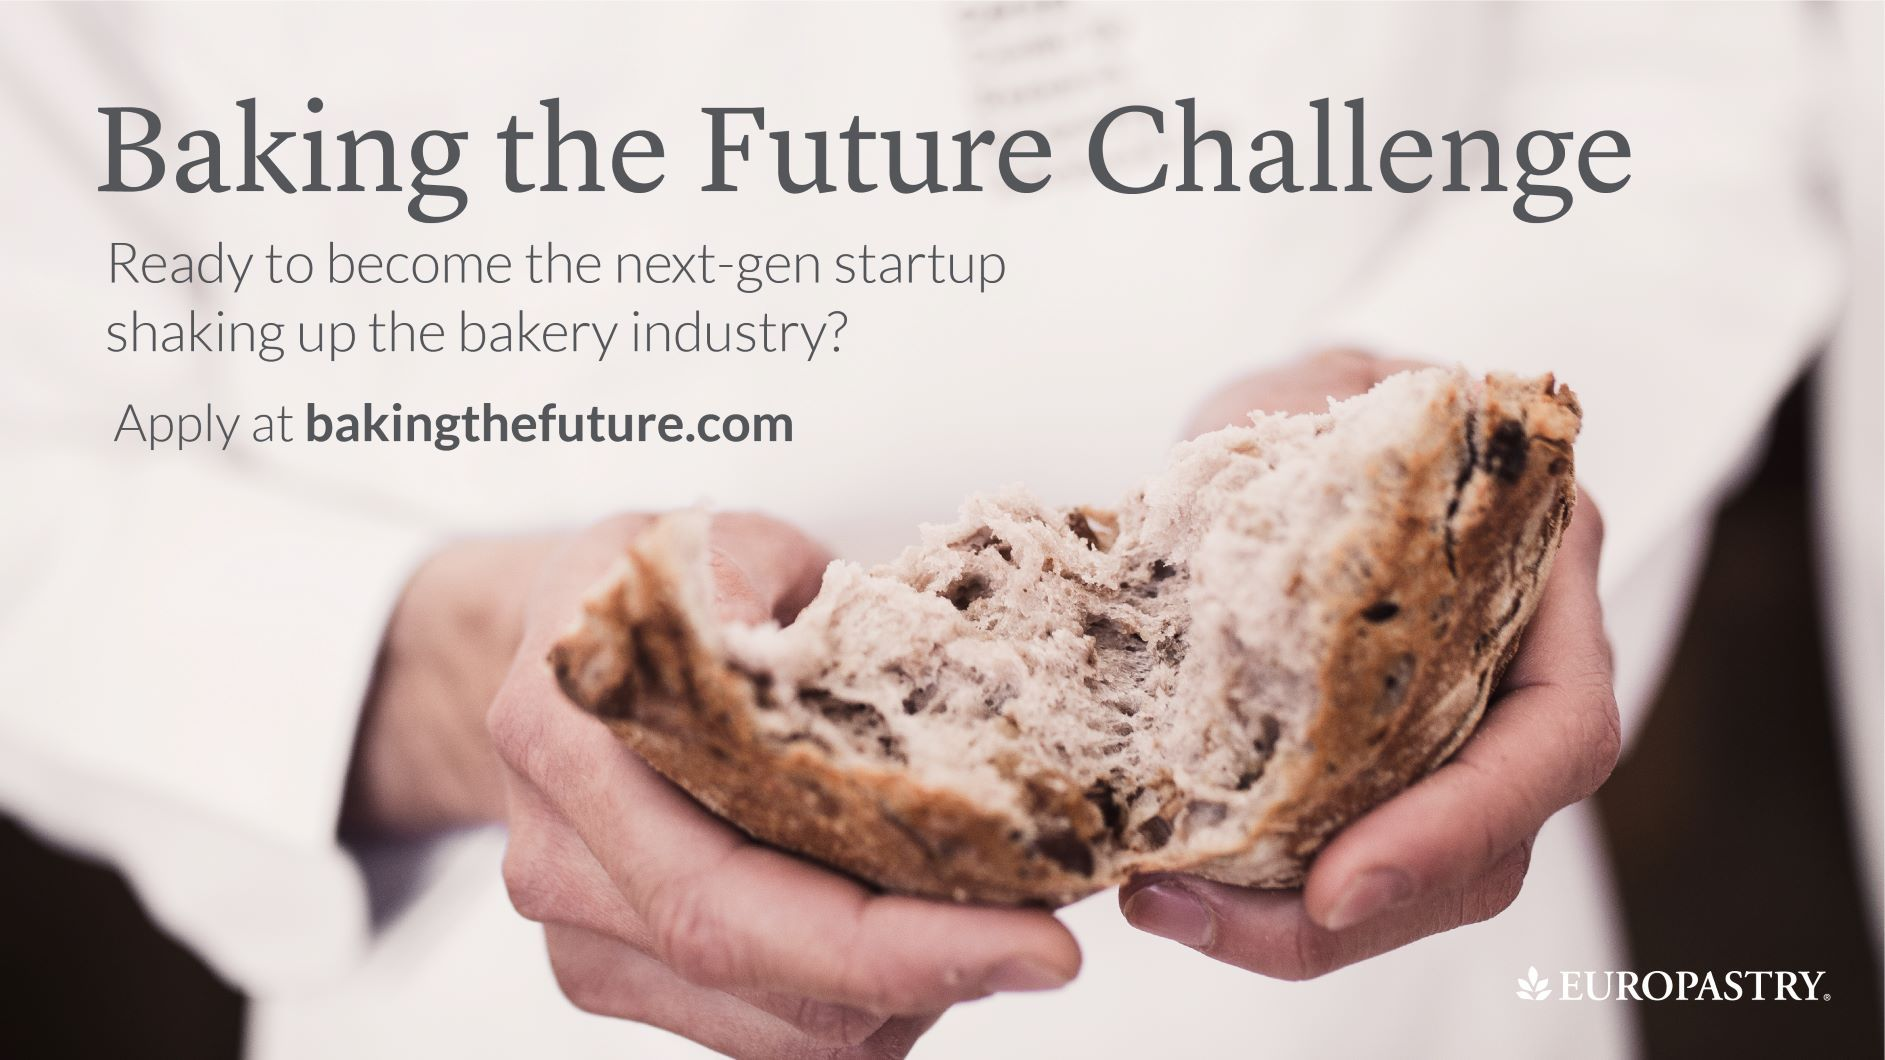 Europastry lanza Baking the Future Challenge